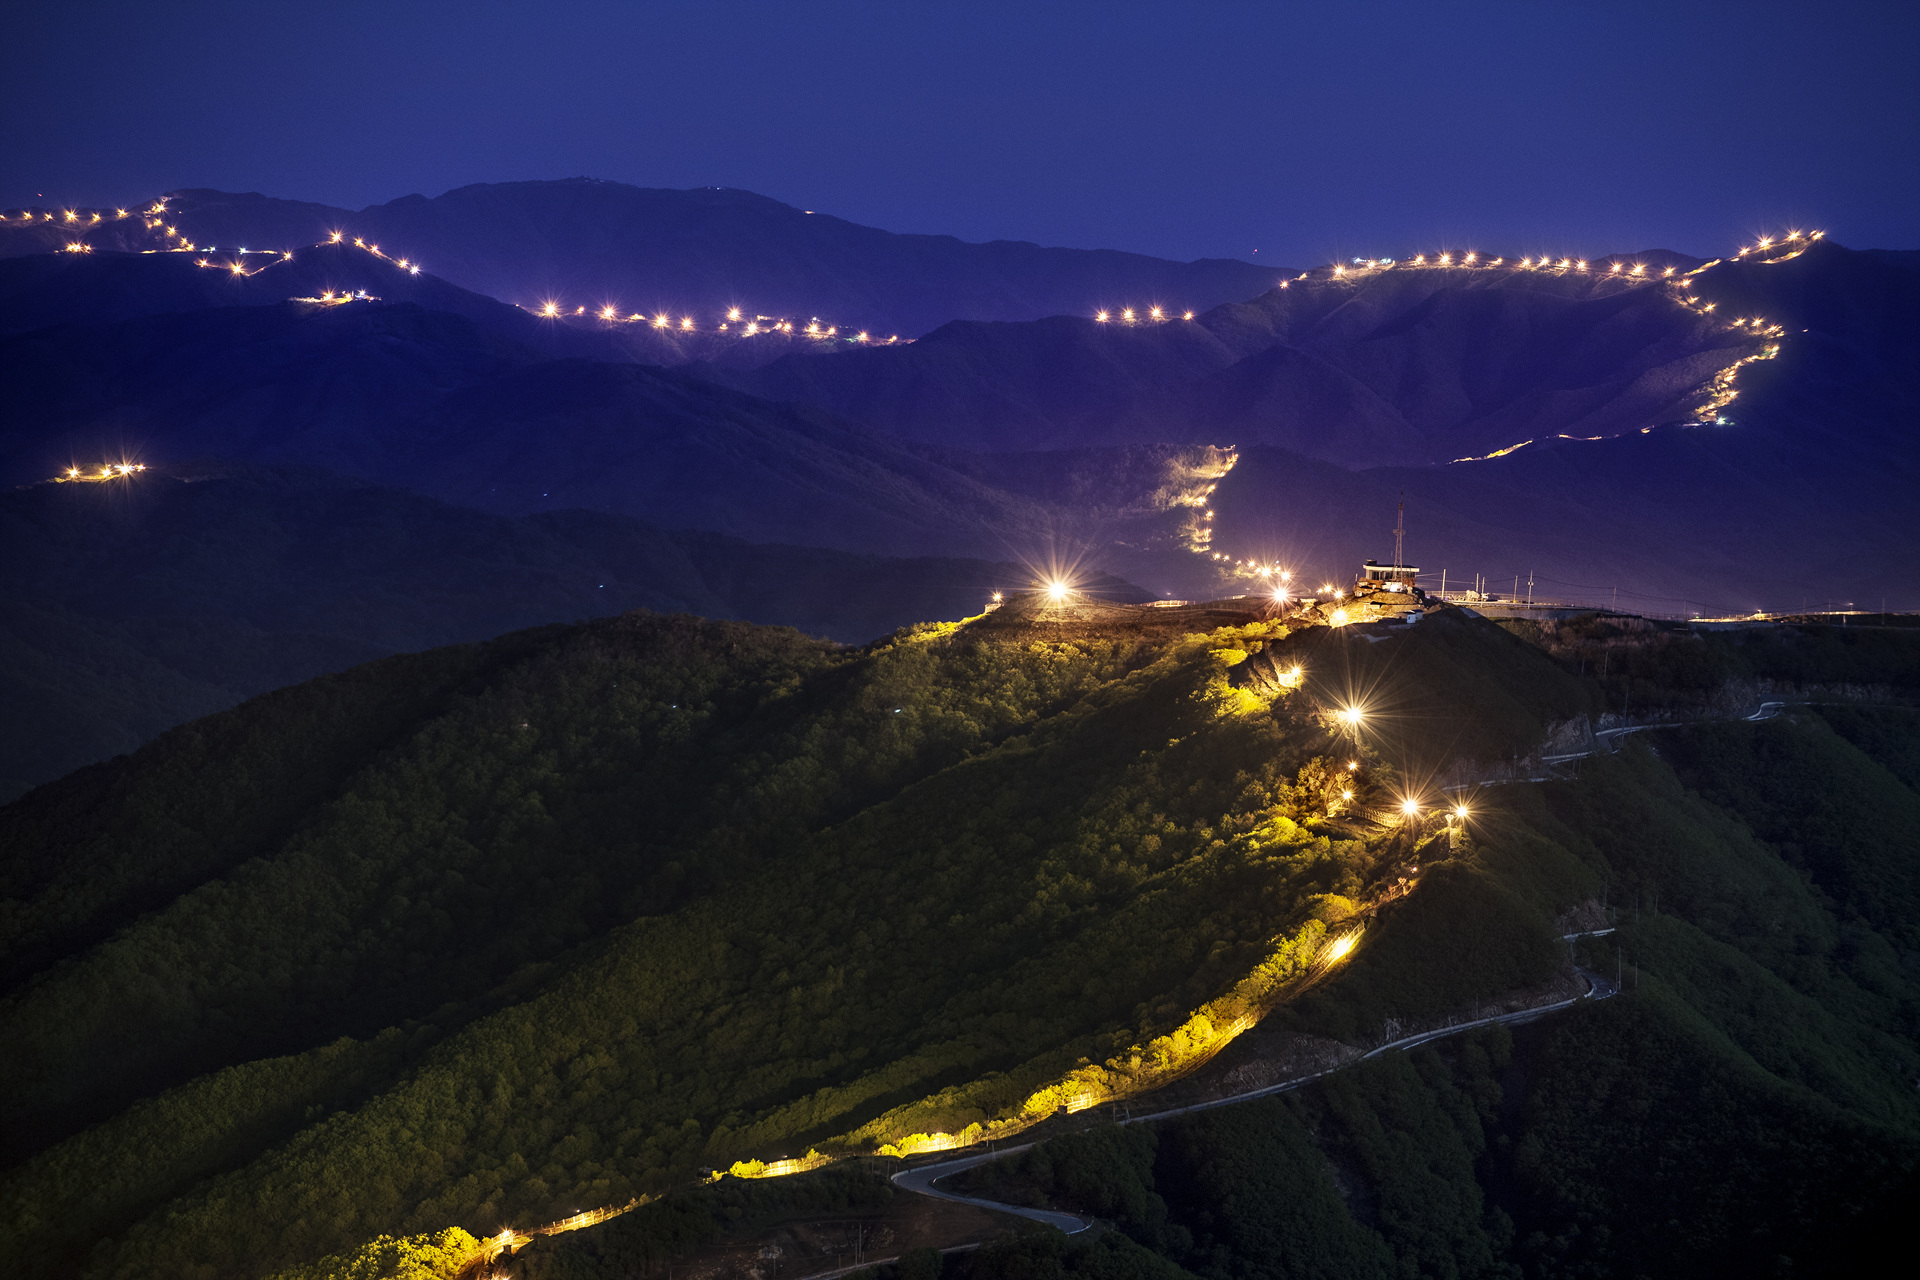 Anti-infiltration lighting illuminated along the SLL – the southern border of the DMZ at Yanggu area in the eastern part of the DMZ. The SLL traverses Korean peninsula from West to East.